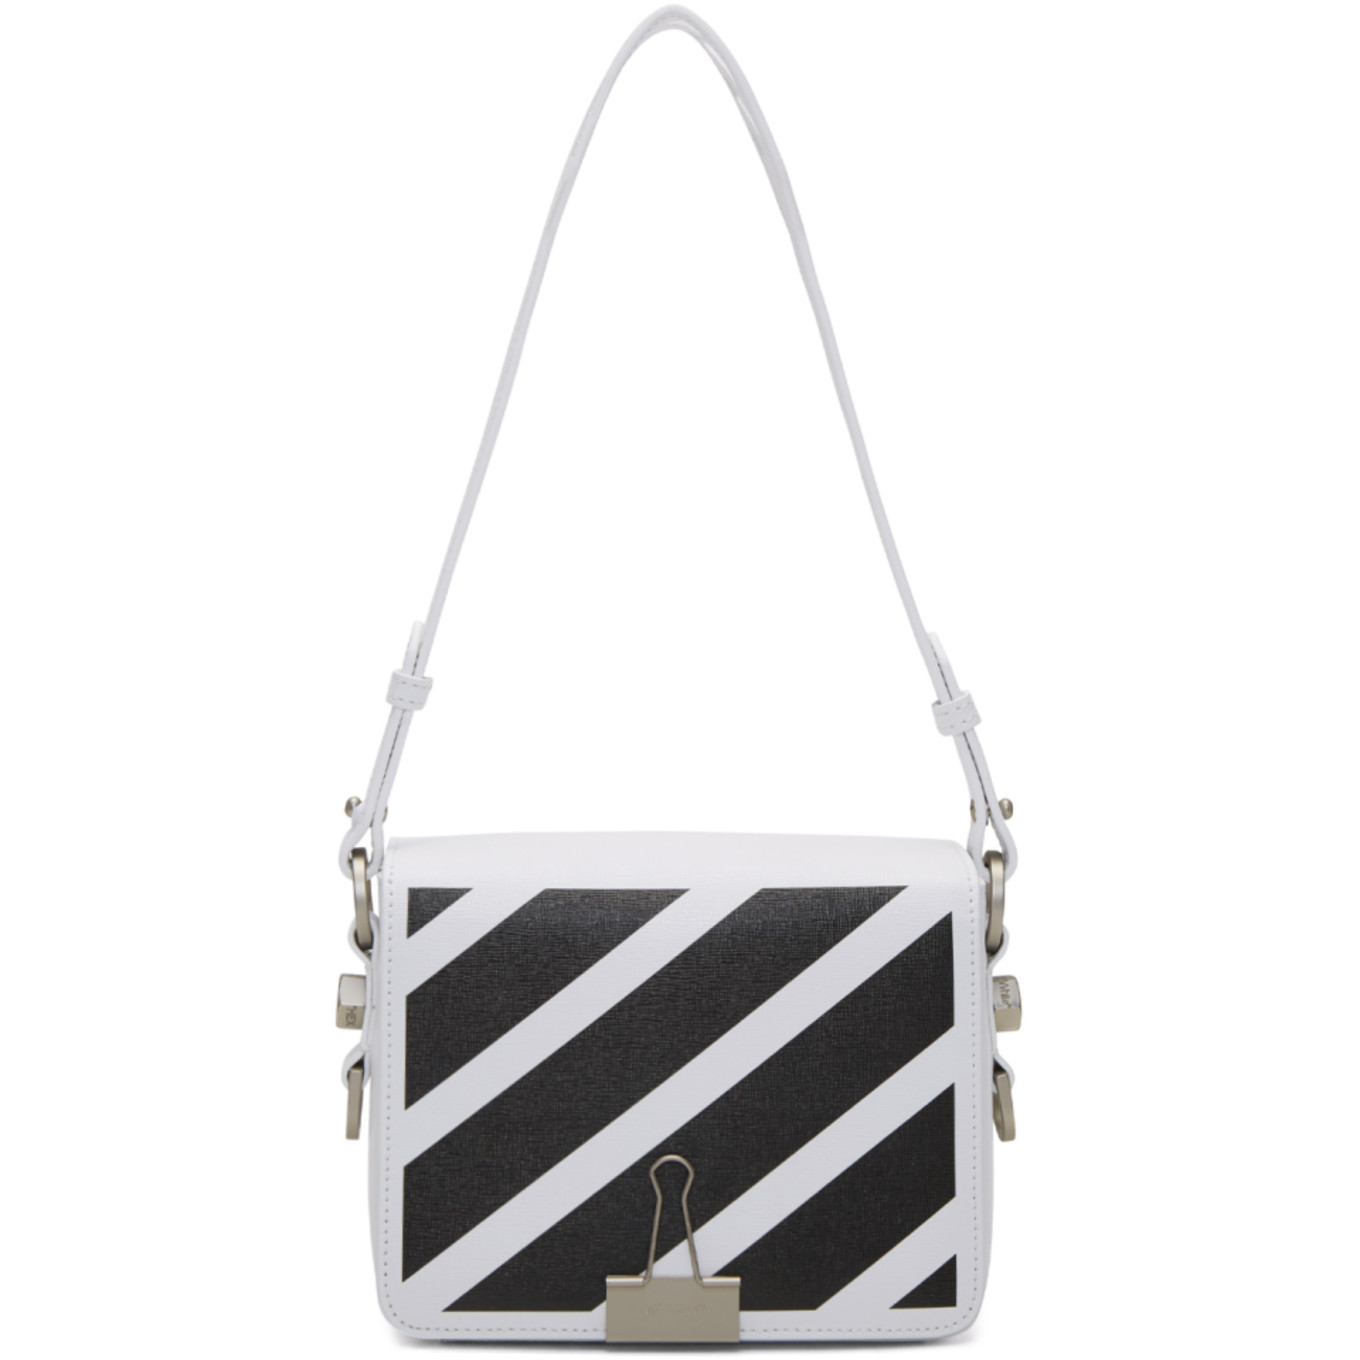 あのローラさんも愛用!!OFF- WHITE Diagonal Binder Clip Bag